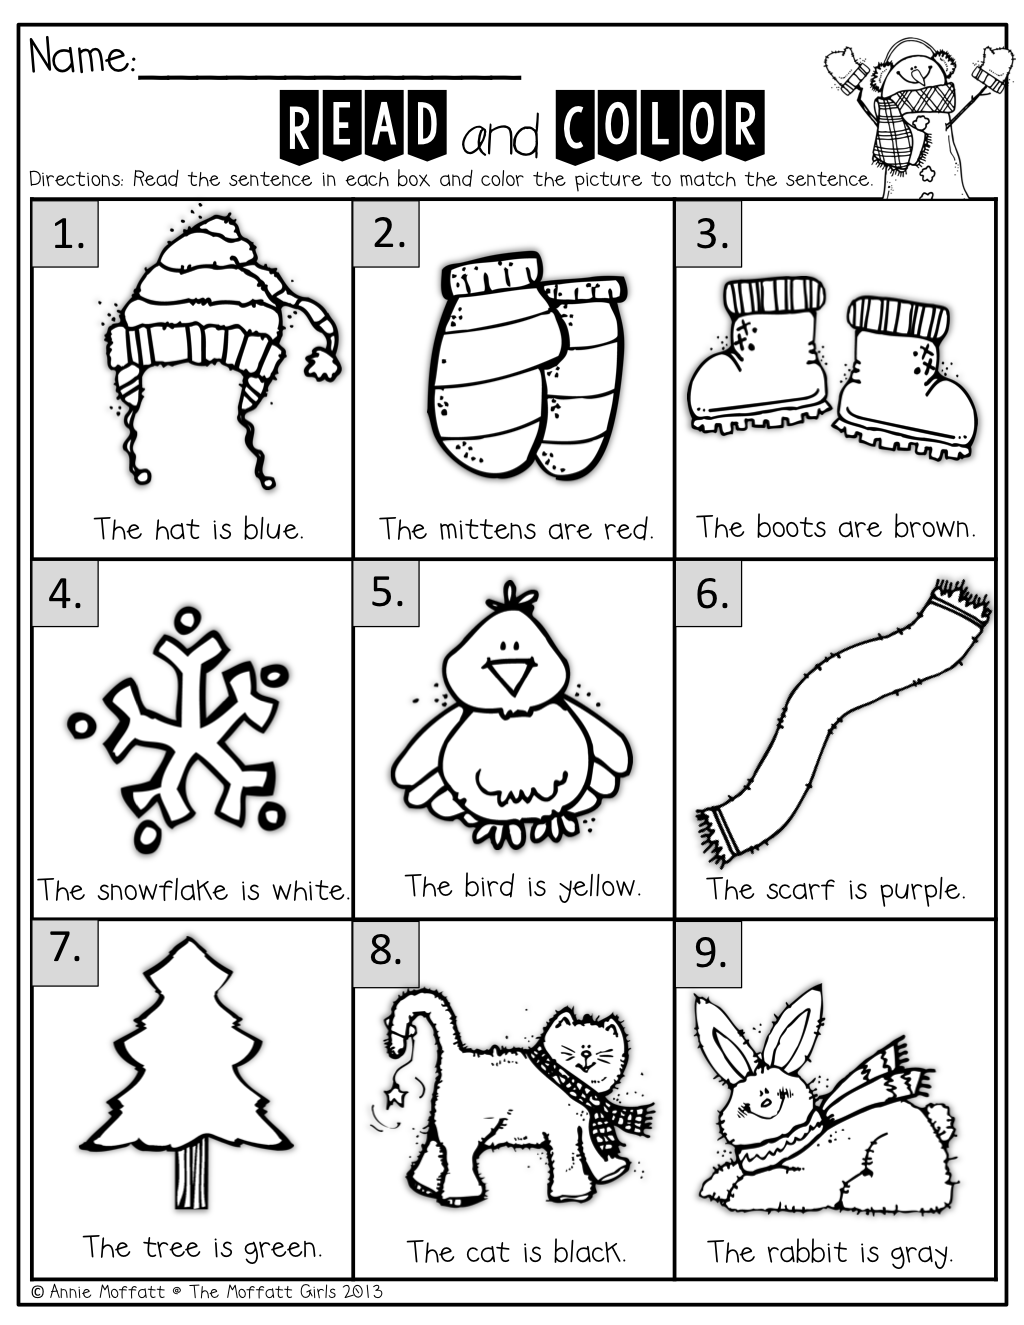 Read and Color! simple sentences for BEGINNING readers with sight ...